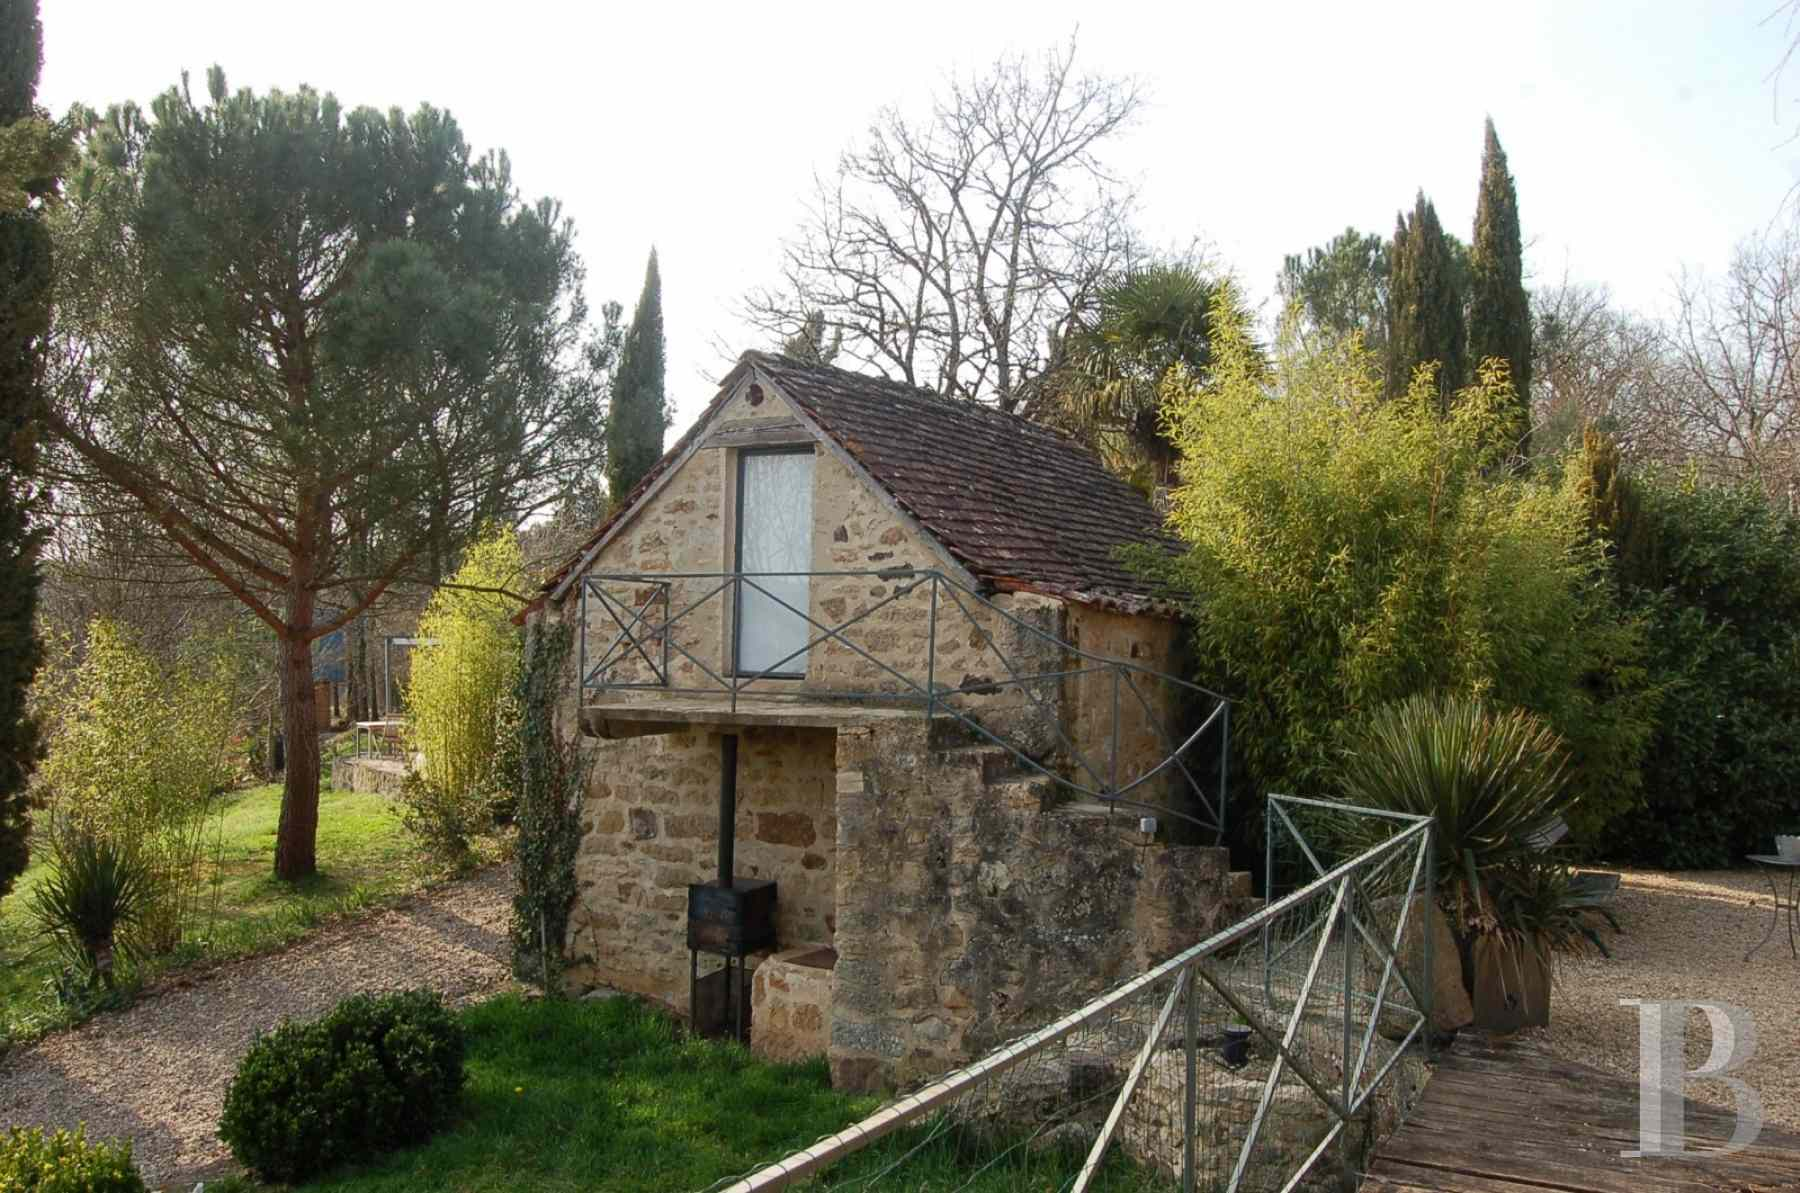 character properties France midi pyrenees hamlet estate - 25 zoom